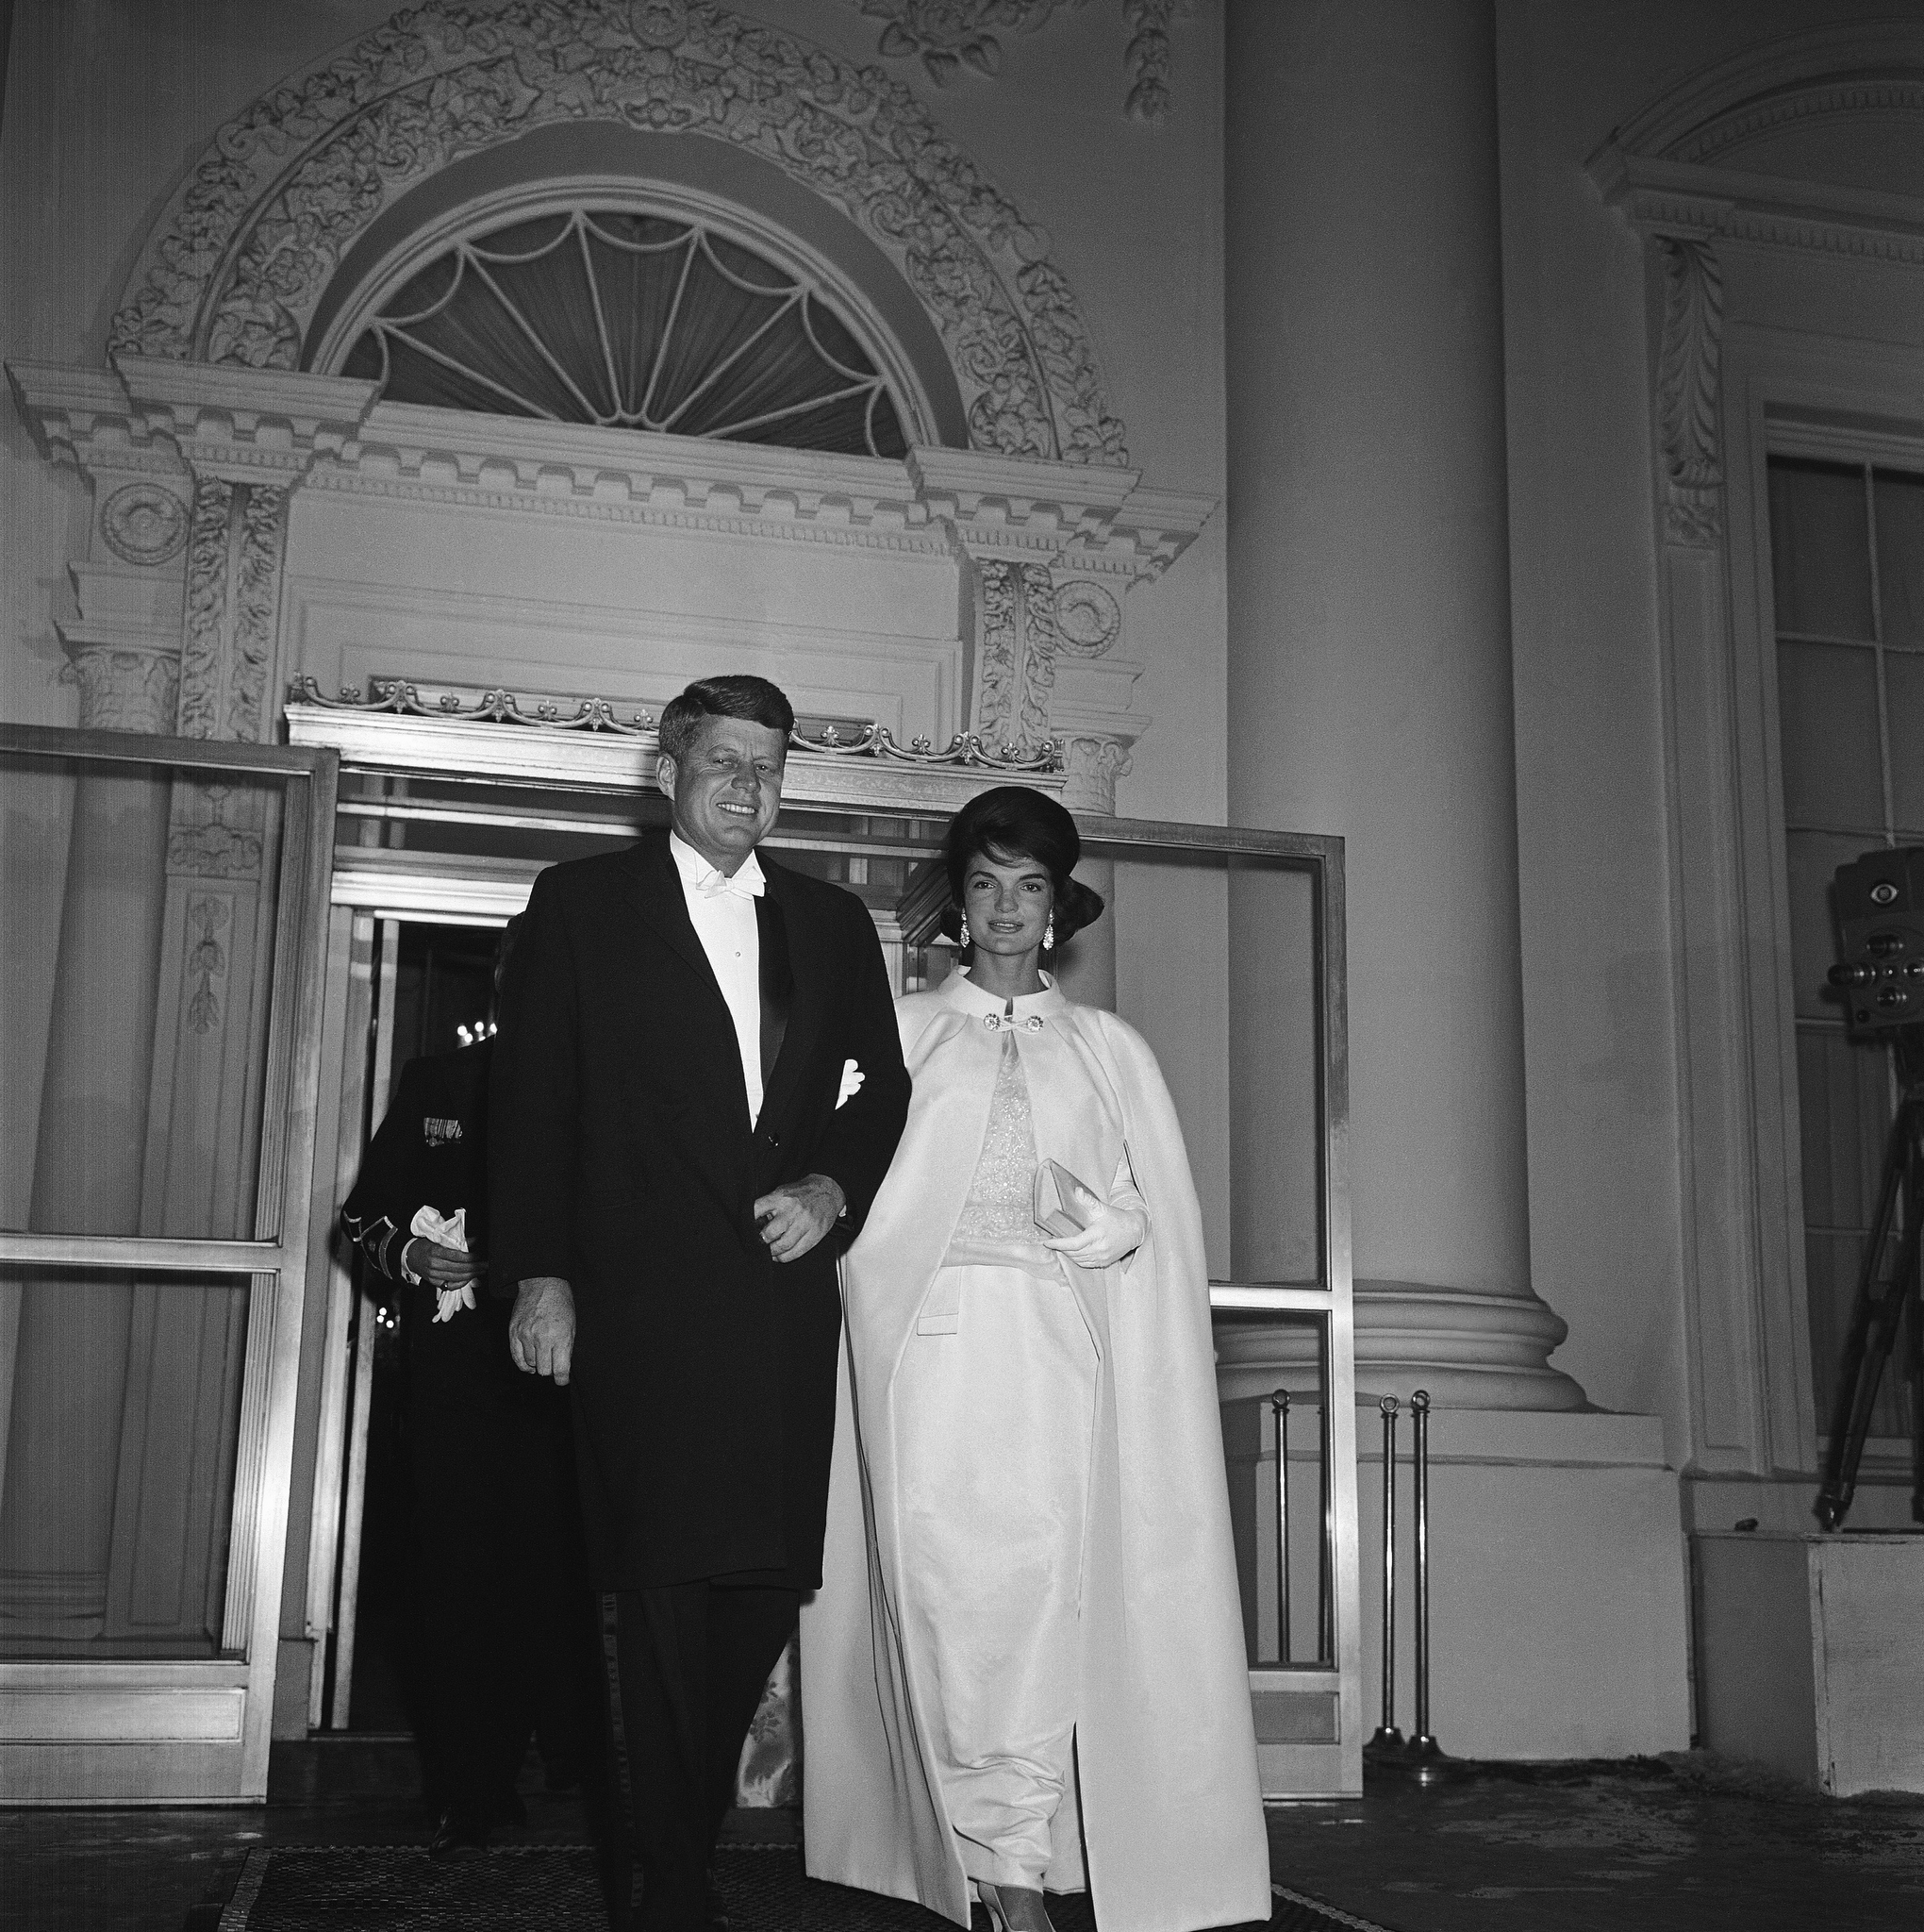 President and Mrs. John Kennedy leave the White House January 20, 1961 for a tour of inaugural balls.